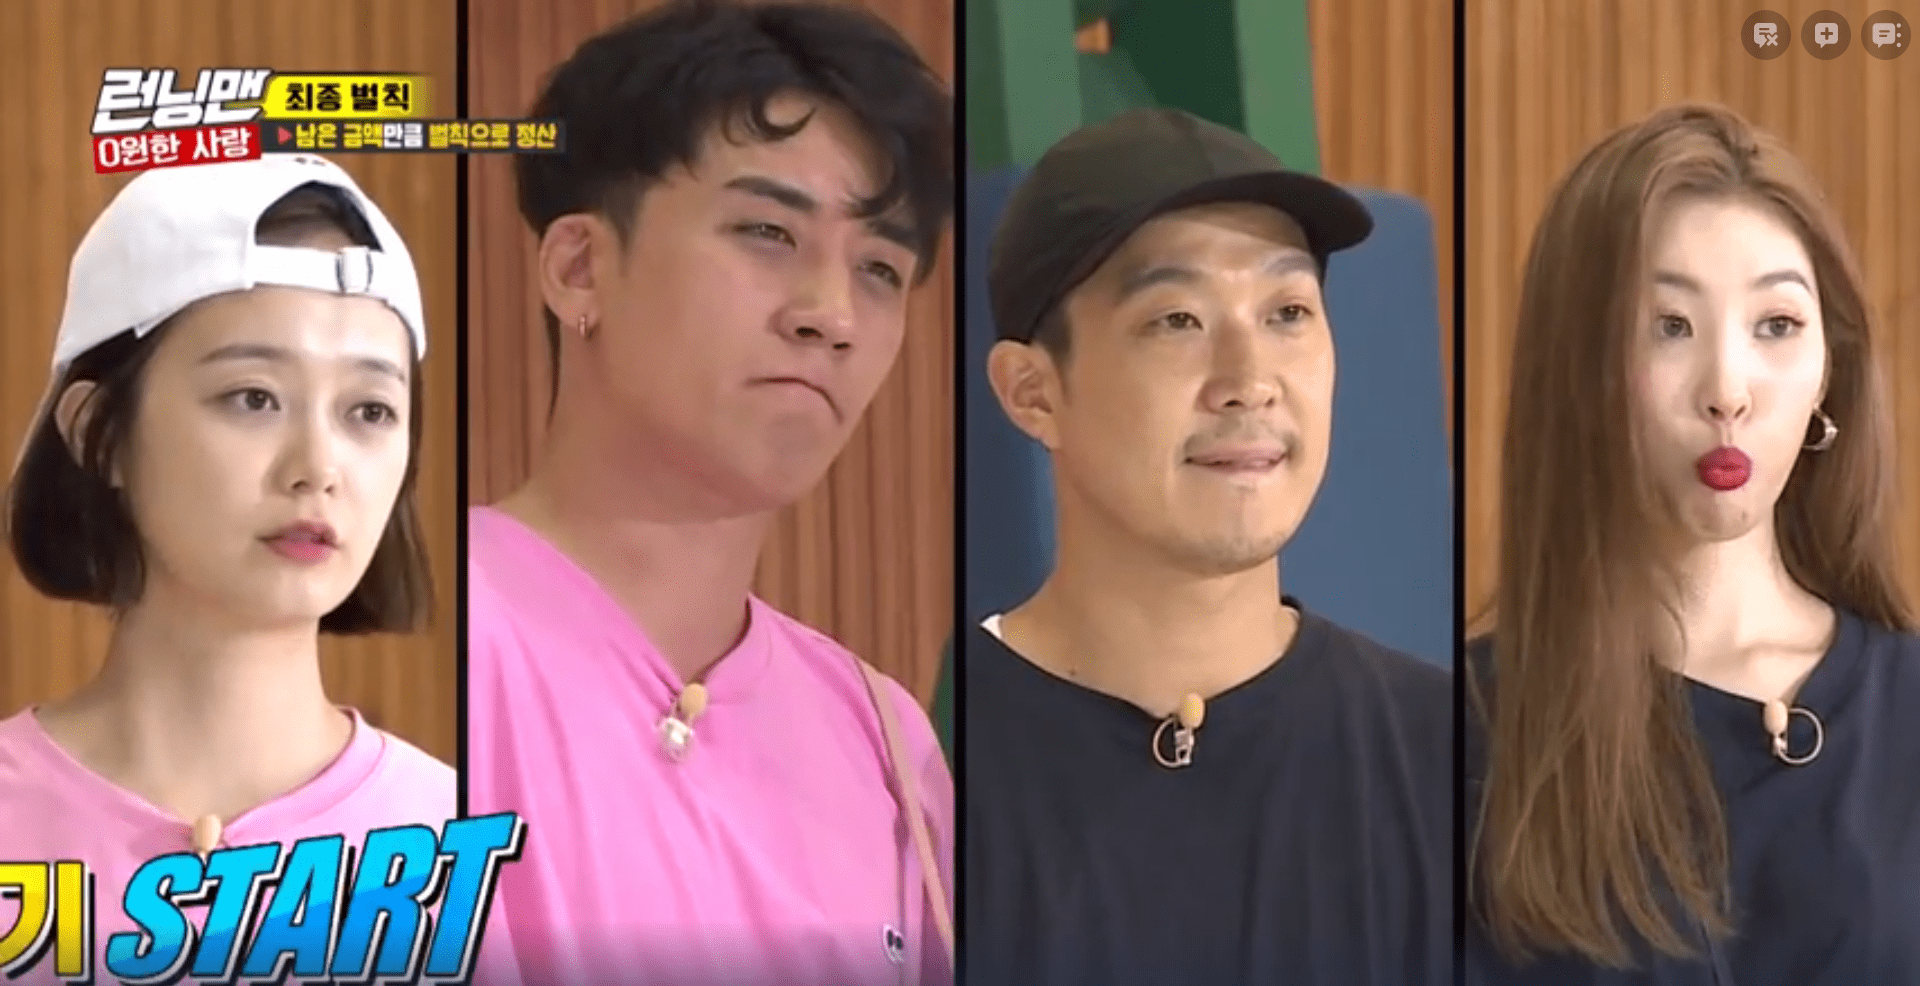 Image of: Dramabeans running Man Attains High Ratings With Hilarious Starstudded Episode What The Kpop Running Man